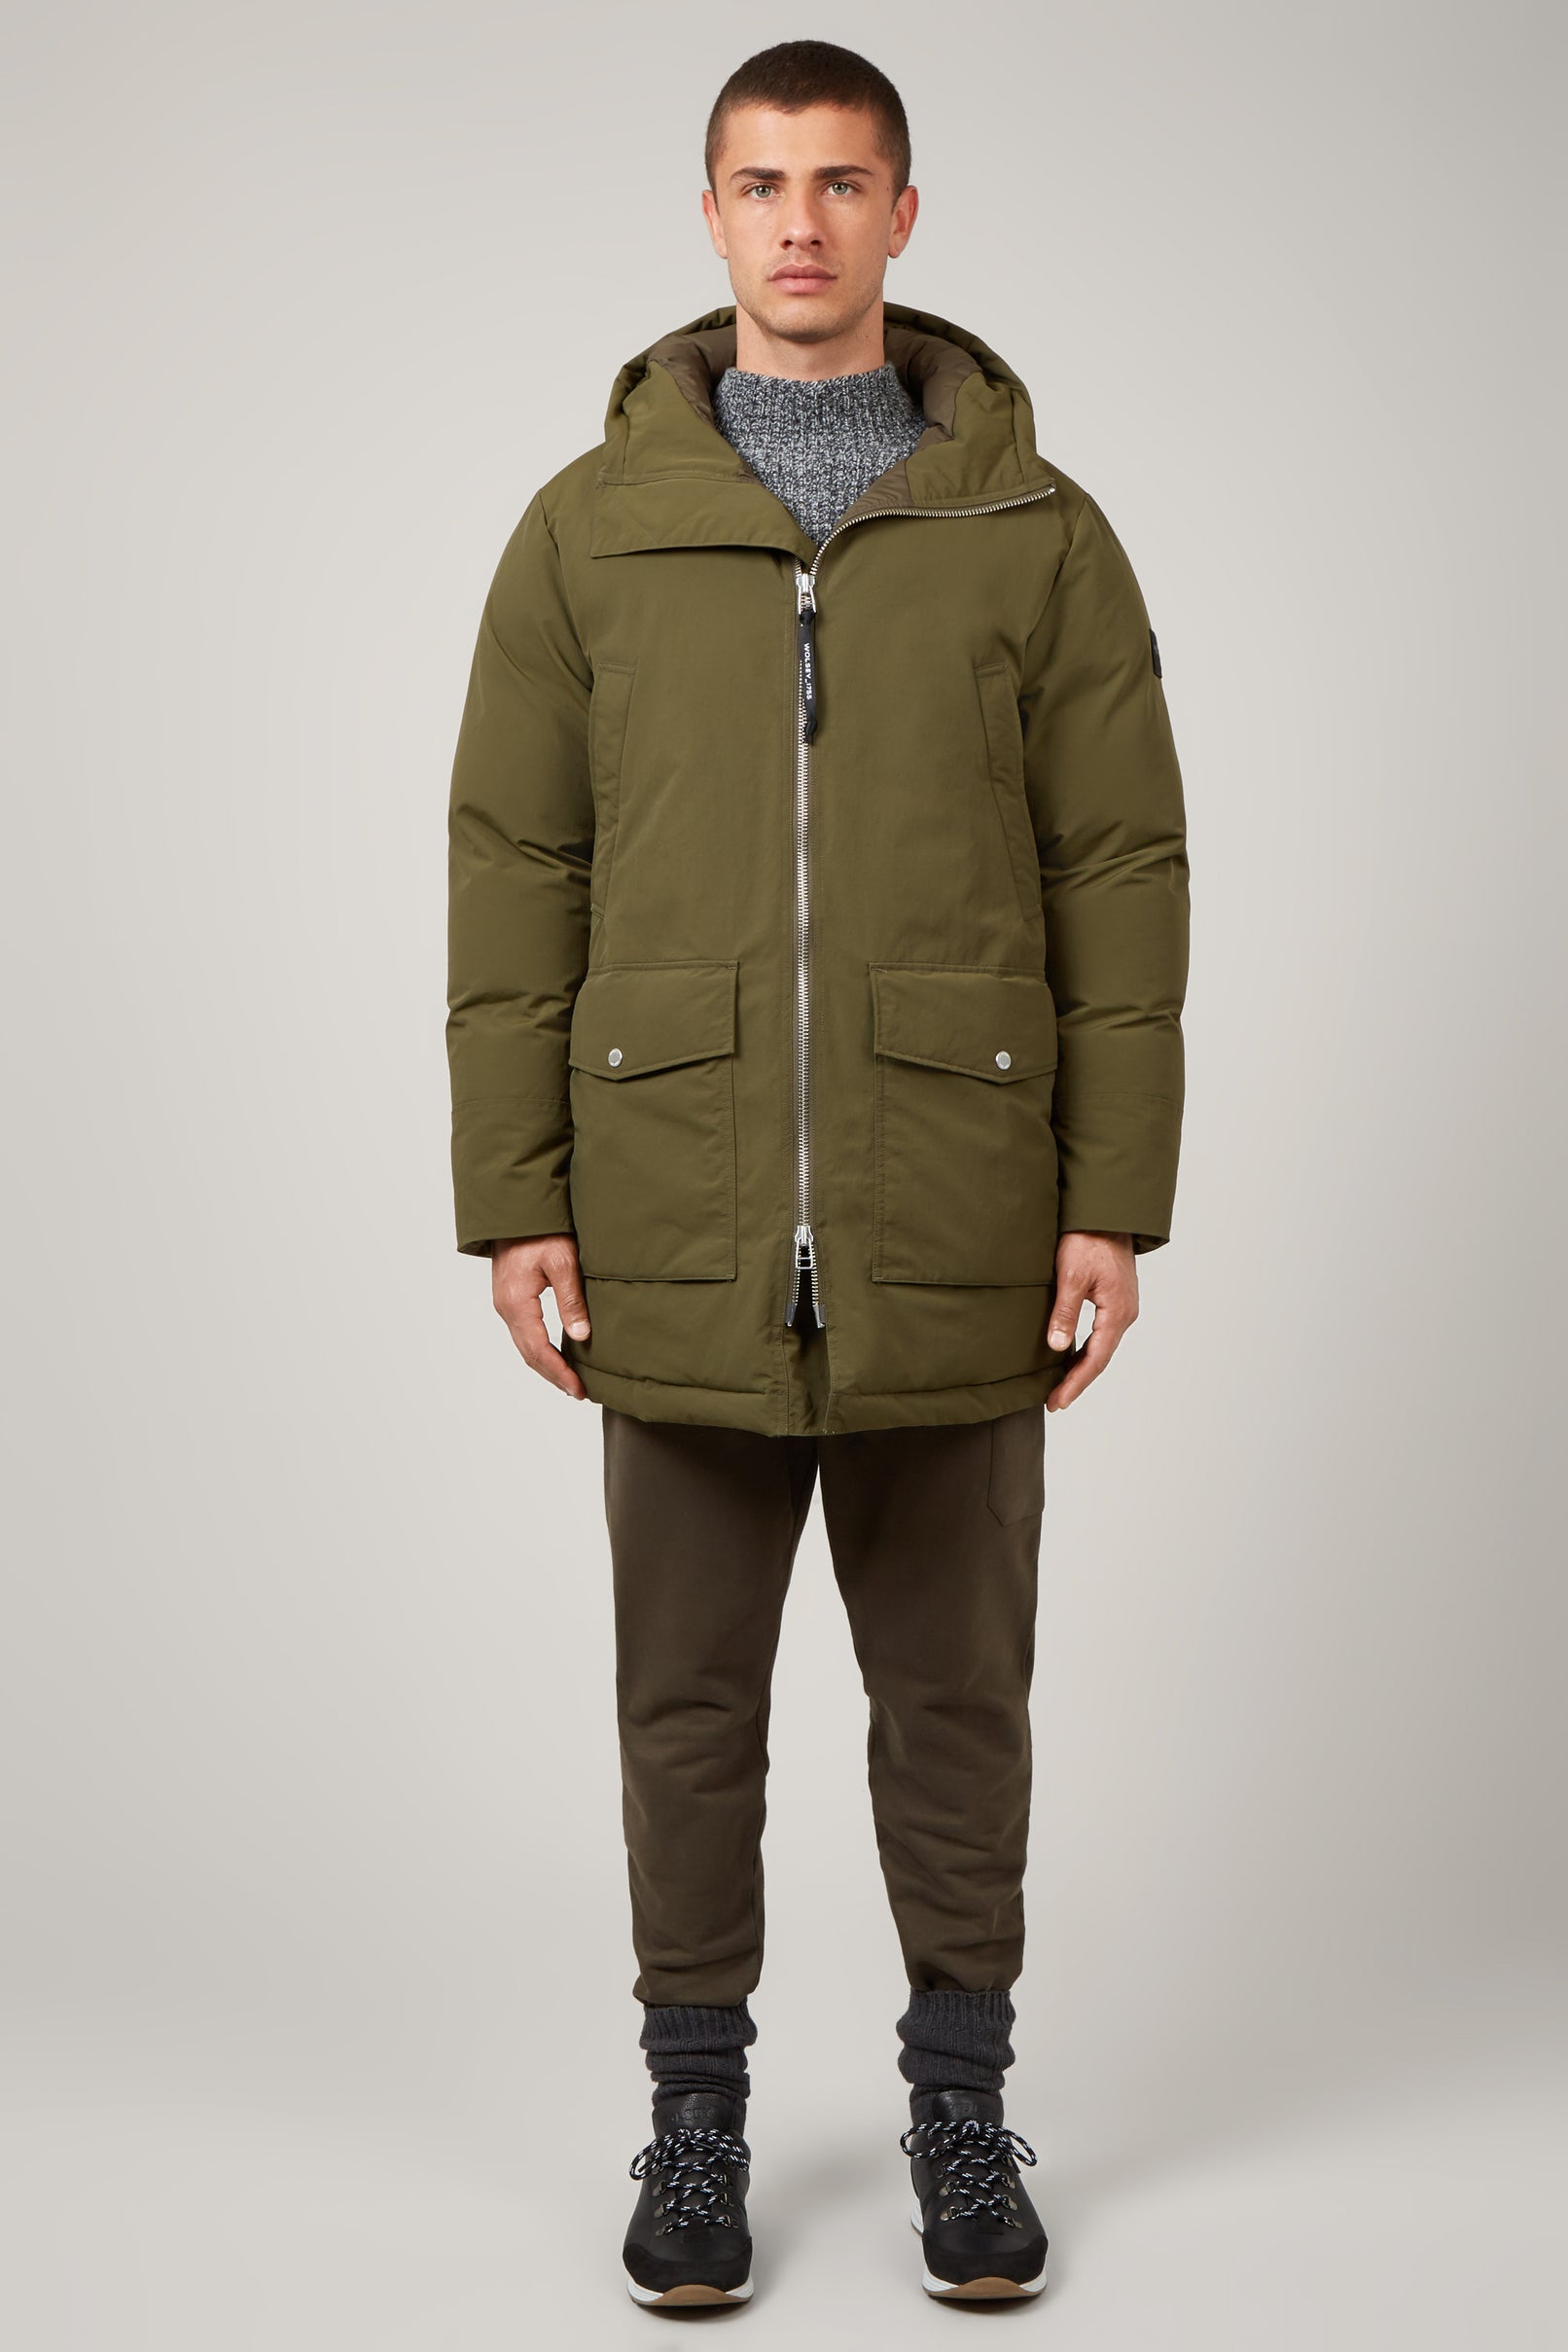 Army Green Explorer Parka